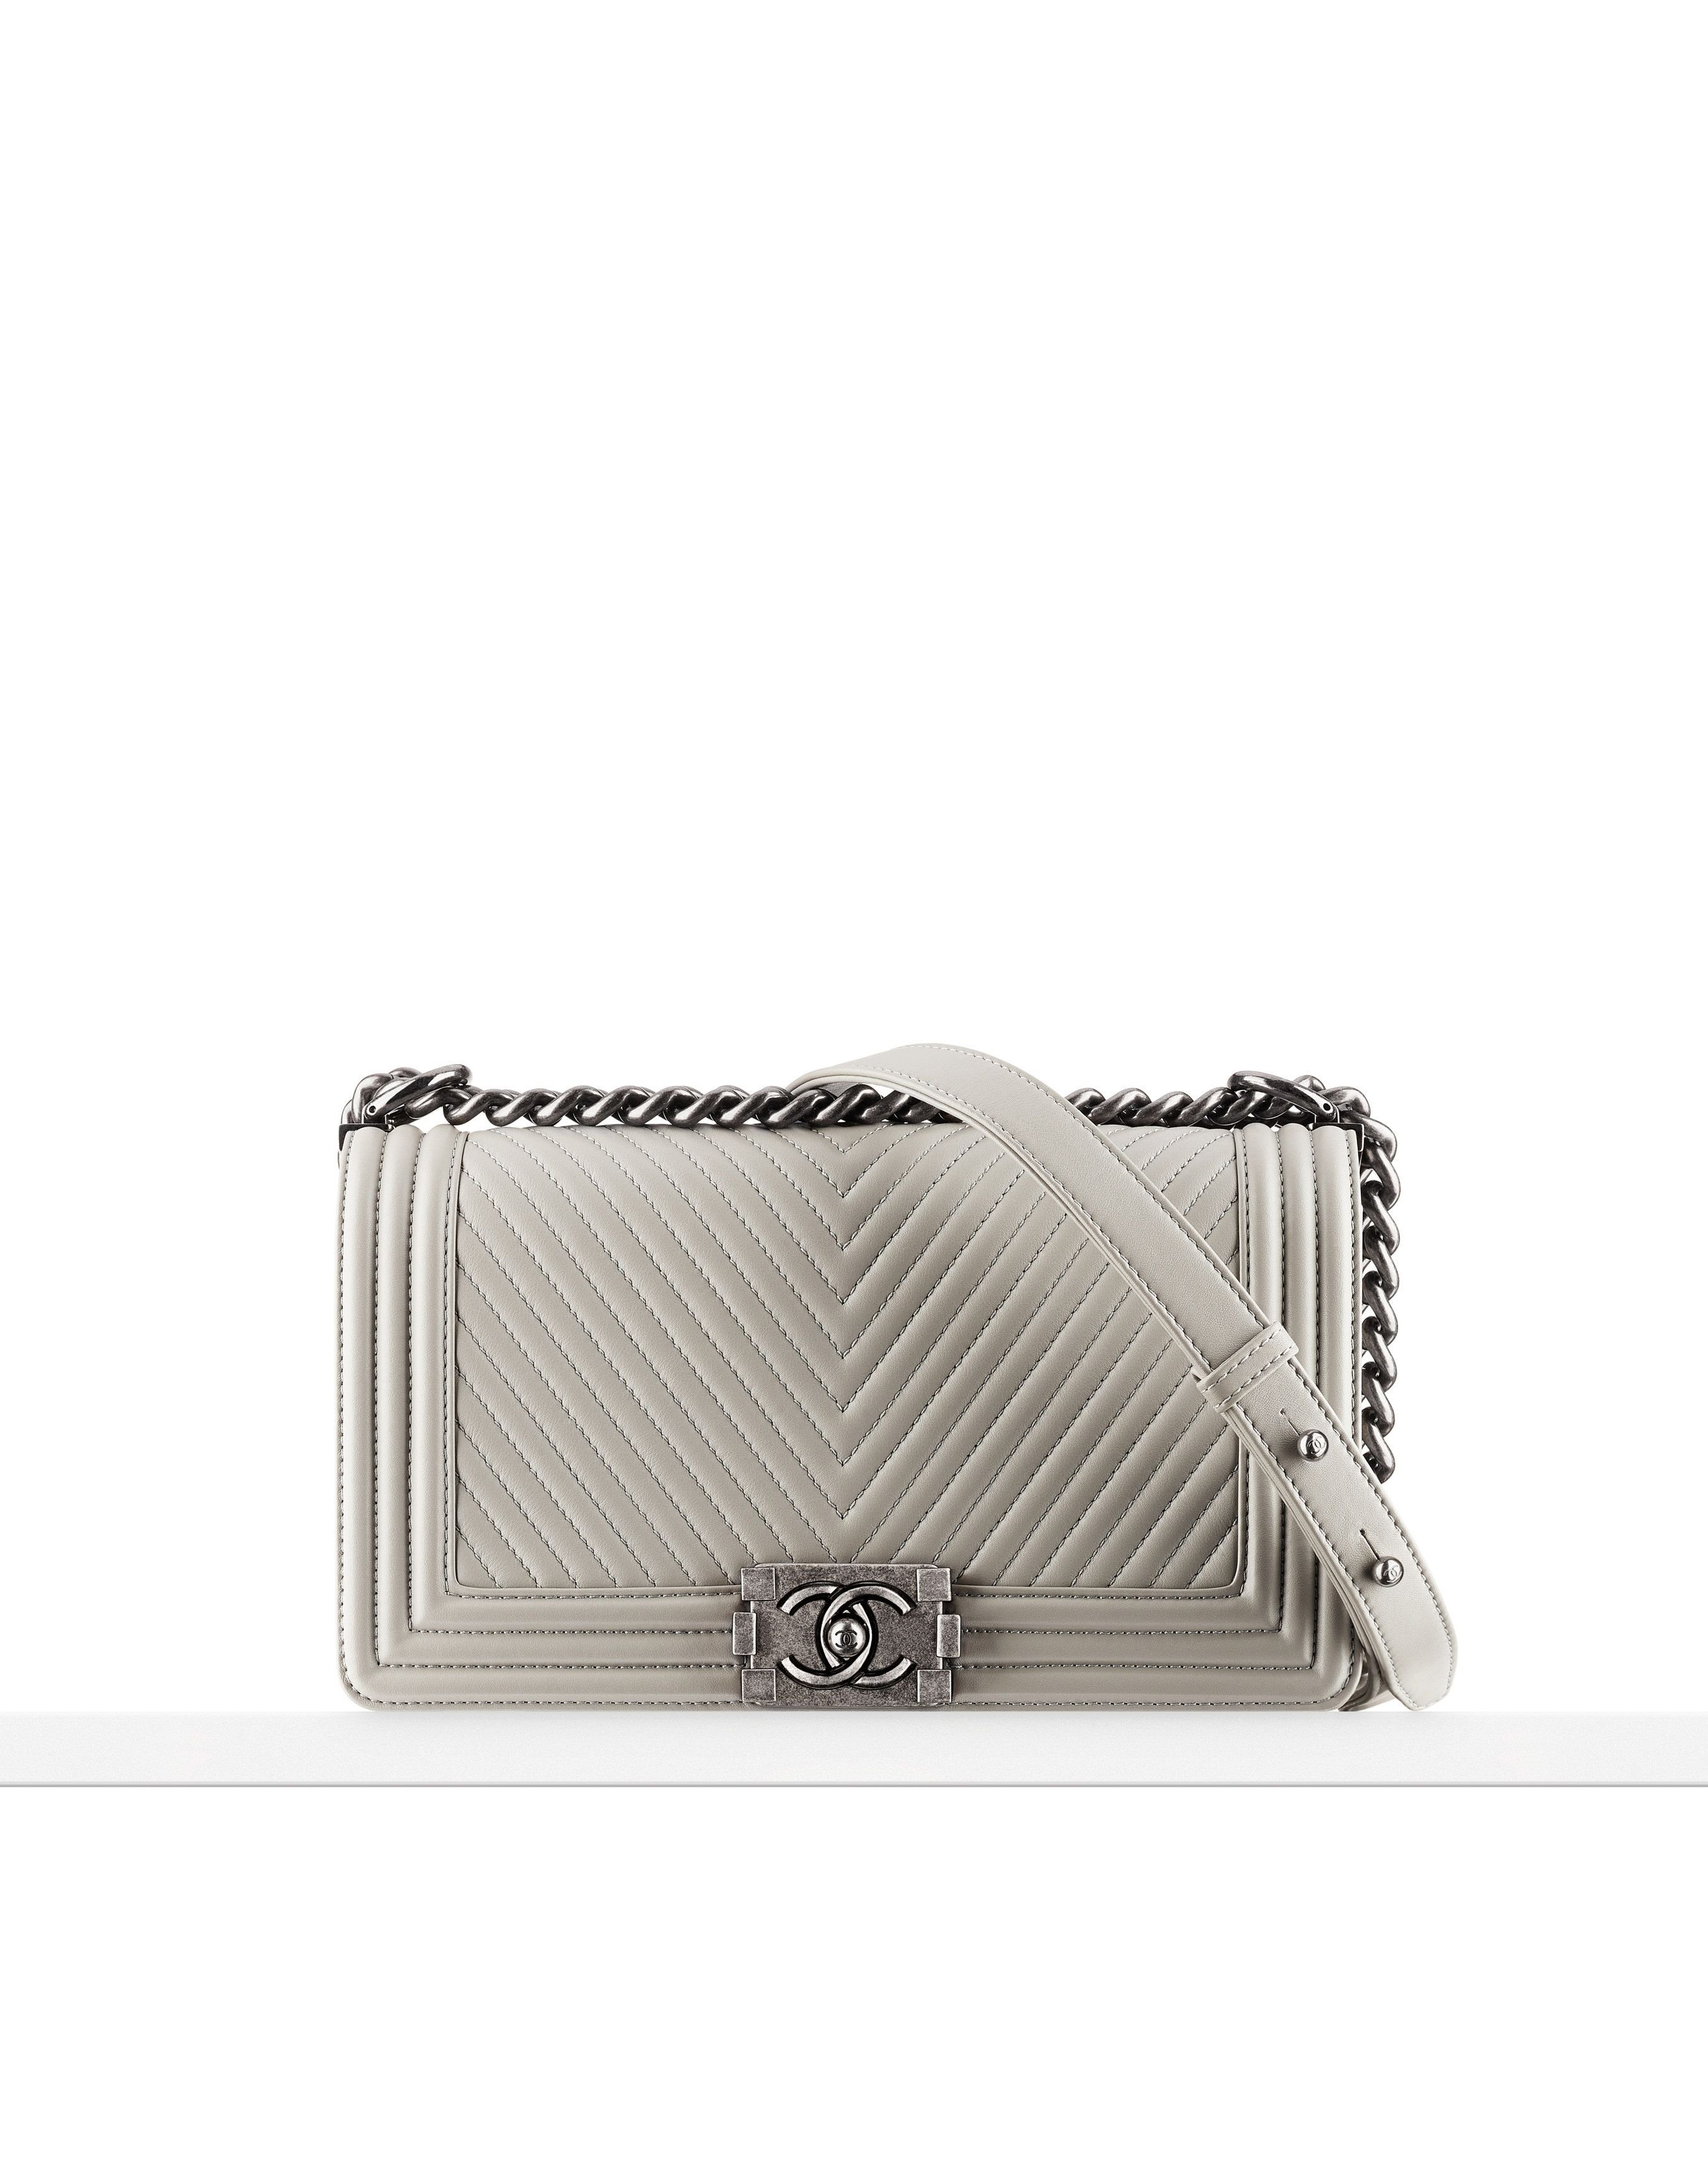 32d877c3540a9d Calfskin Boy CHANEL flap bag with... - CHANEL | Chanel & Champagne ...